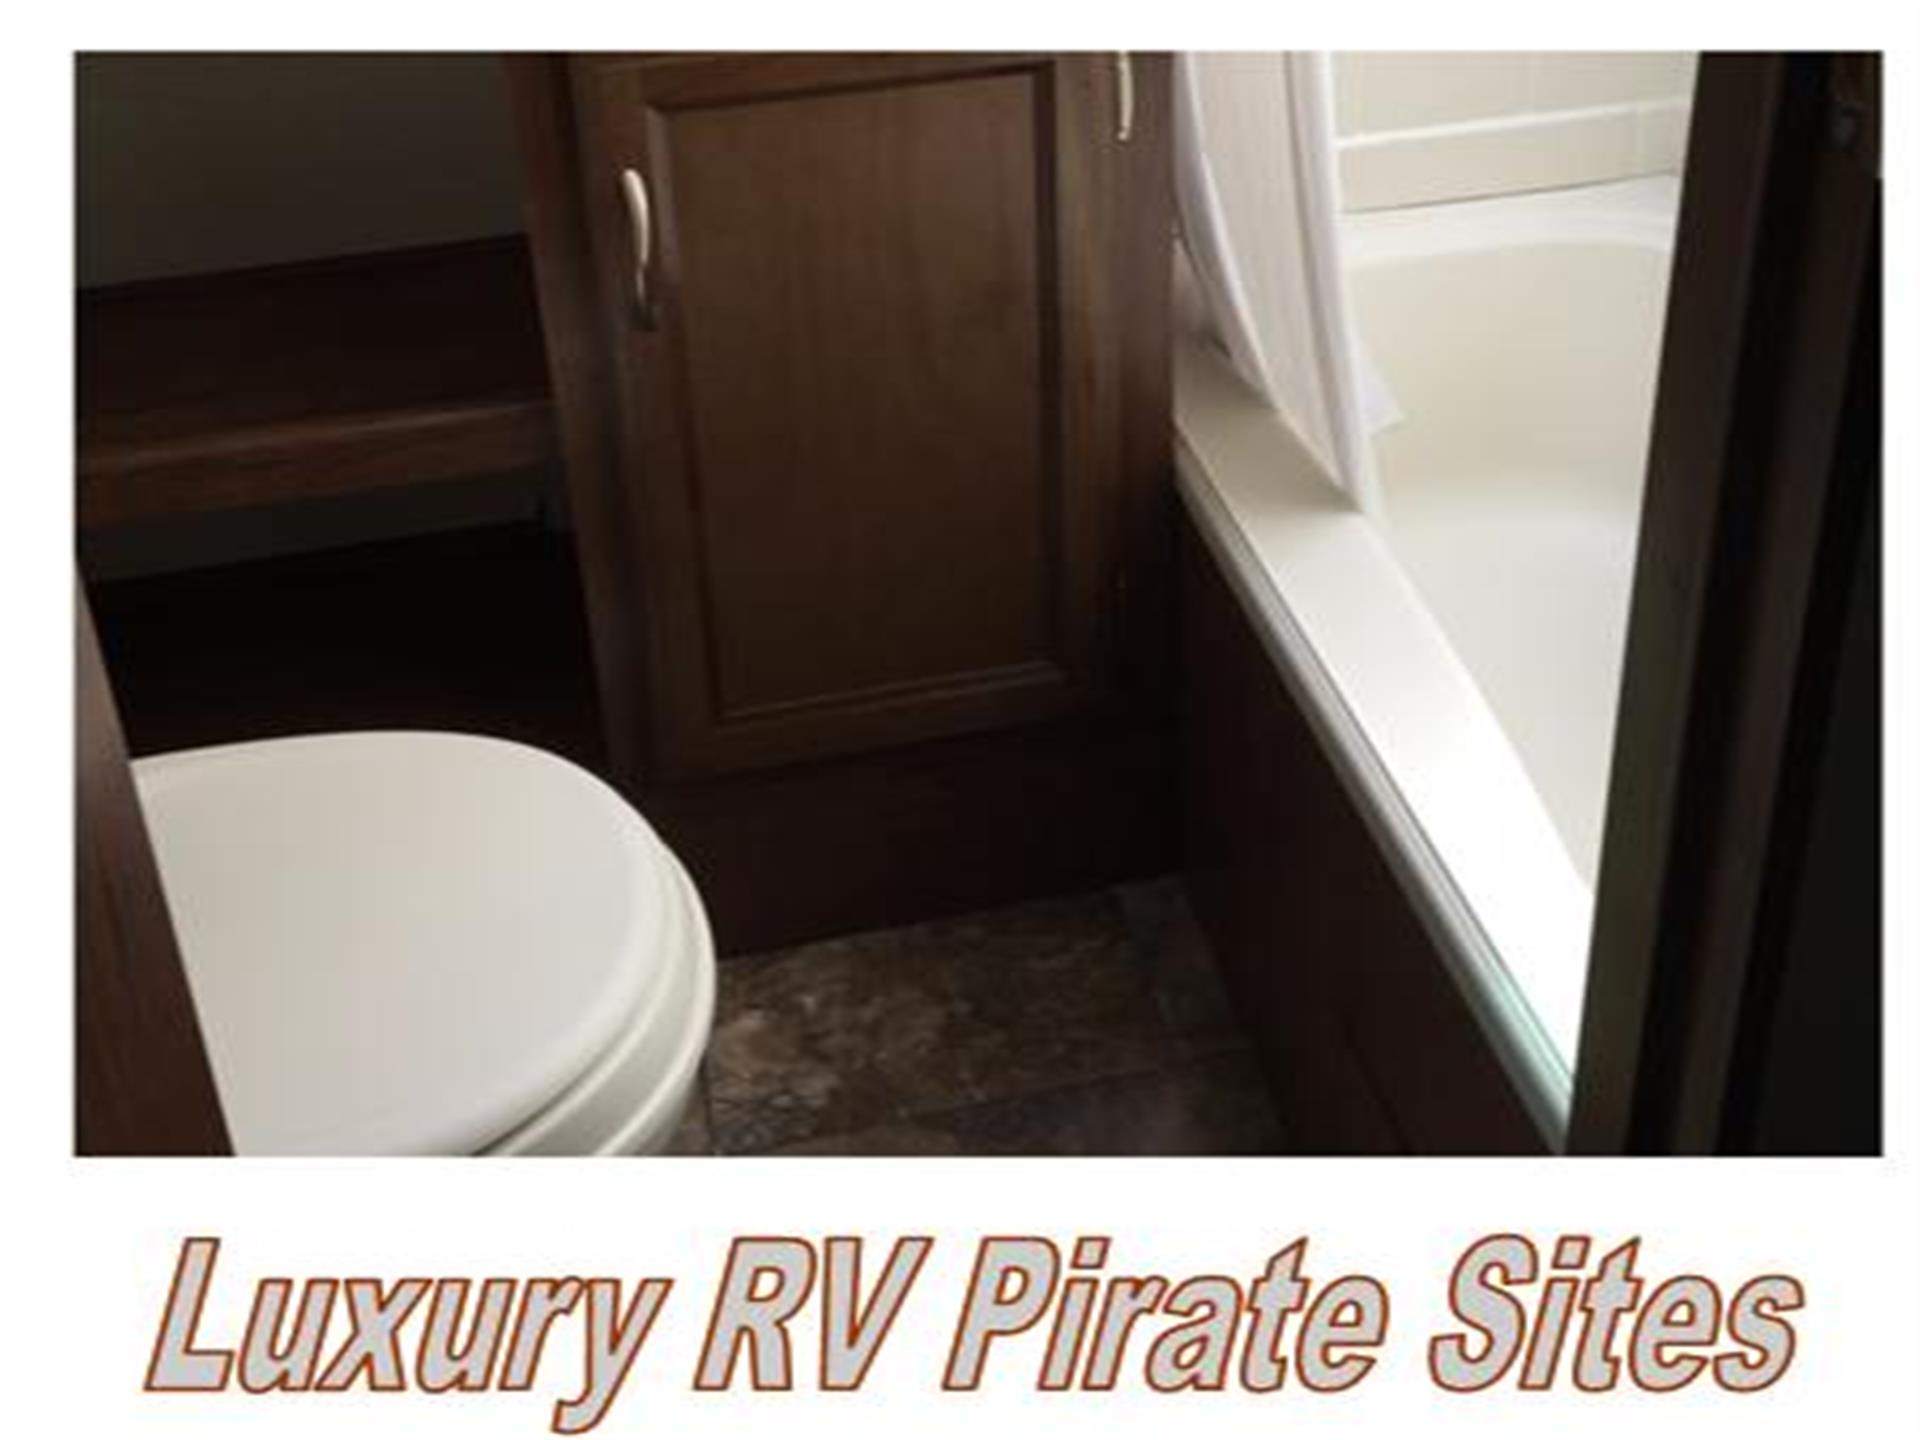 interior of a luxury rv rental with a full bathroom